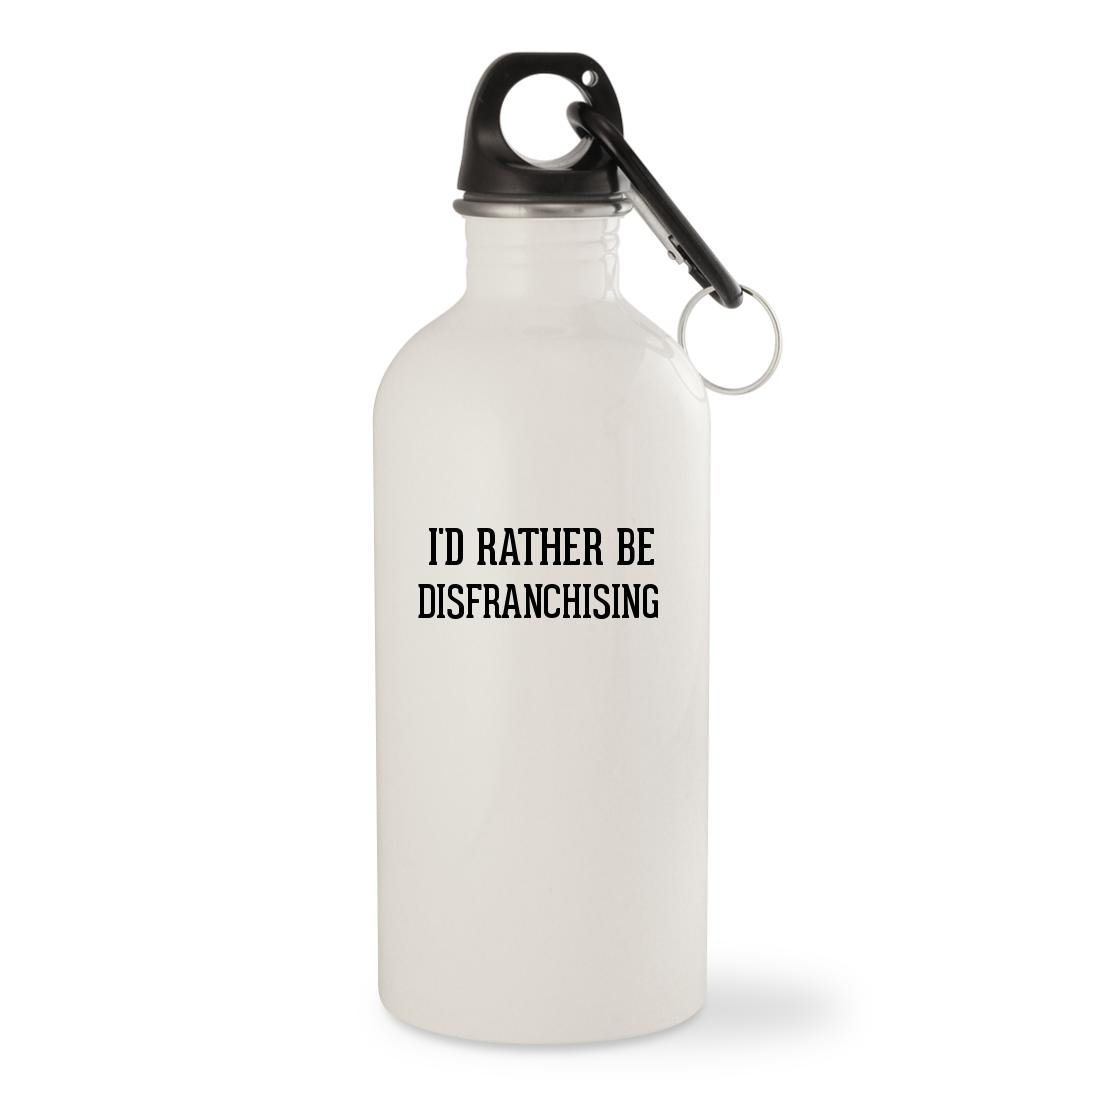 I'd Rather Be DISFRANCHISING - White 20oz Stainless Steel Water Bottle with Carabiner